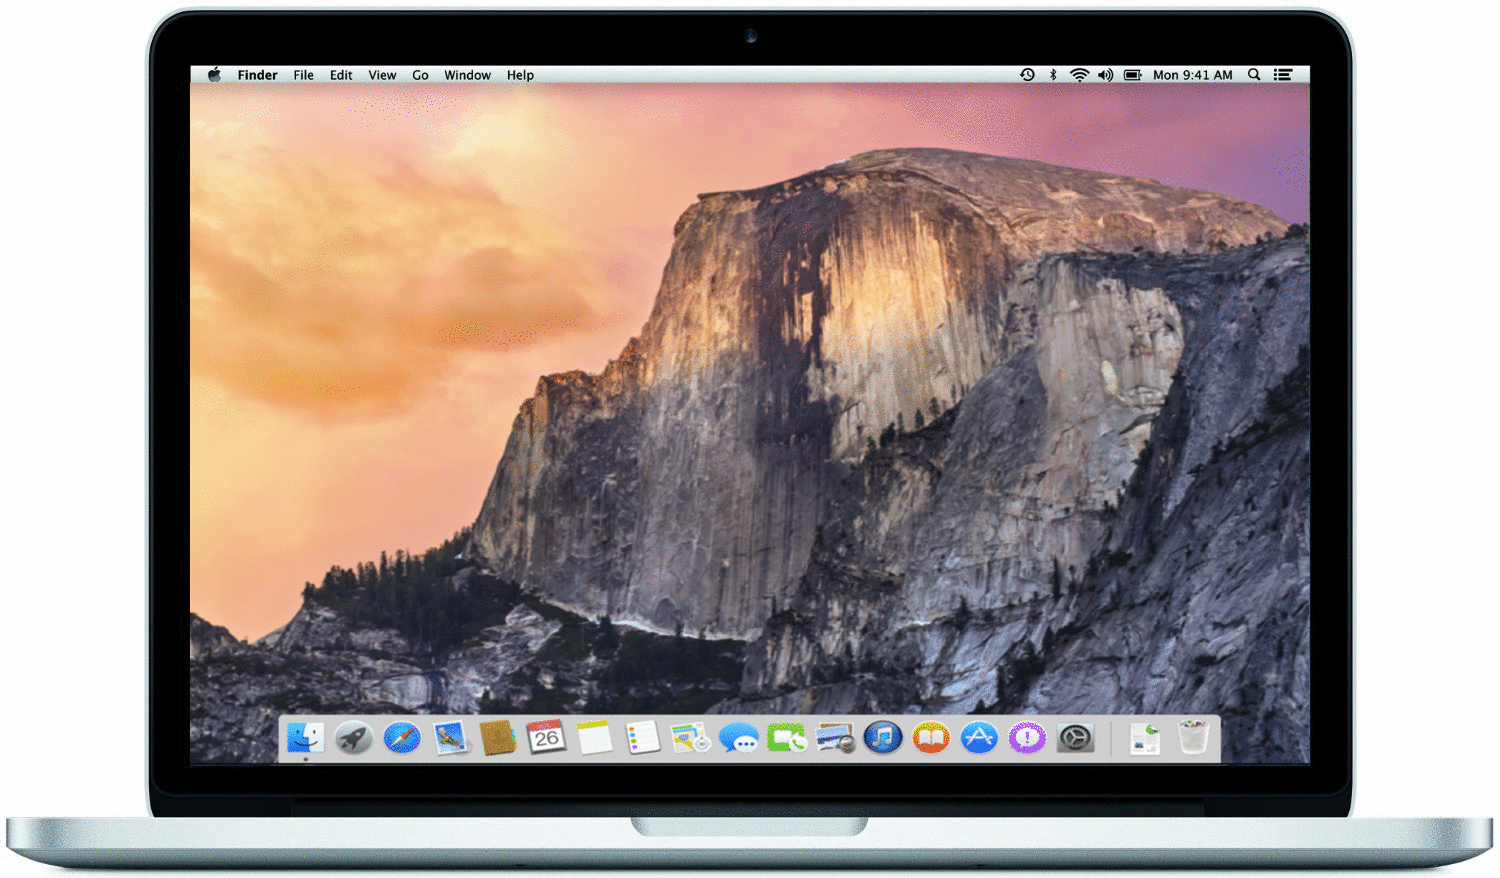 Apple MacBook Pro CTO 13.3 (Retina Display) 2.9 GHz Intel Core i5 16 GB RAM 1 TB PCIe SSD [Early 2015]